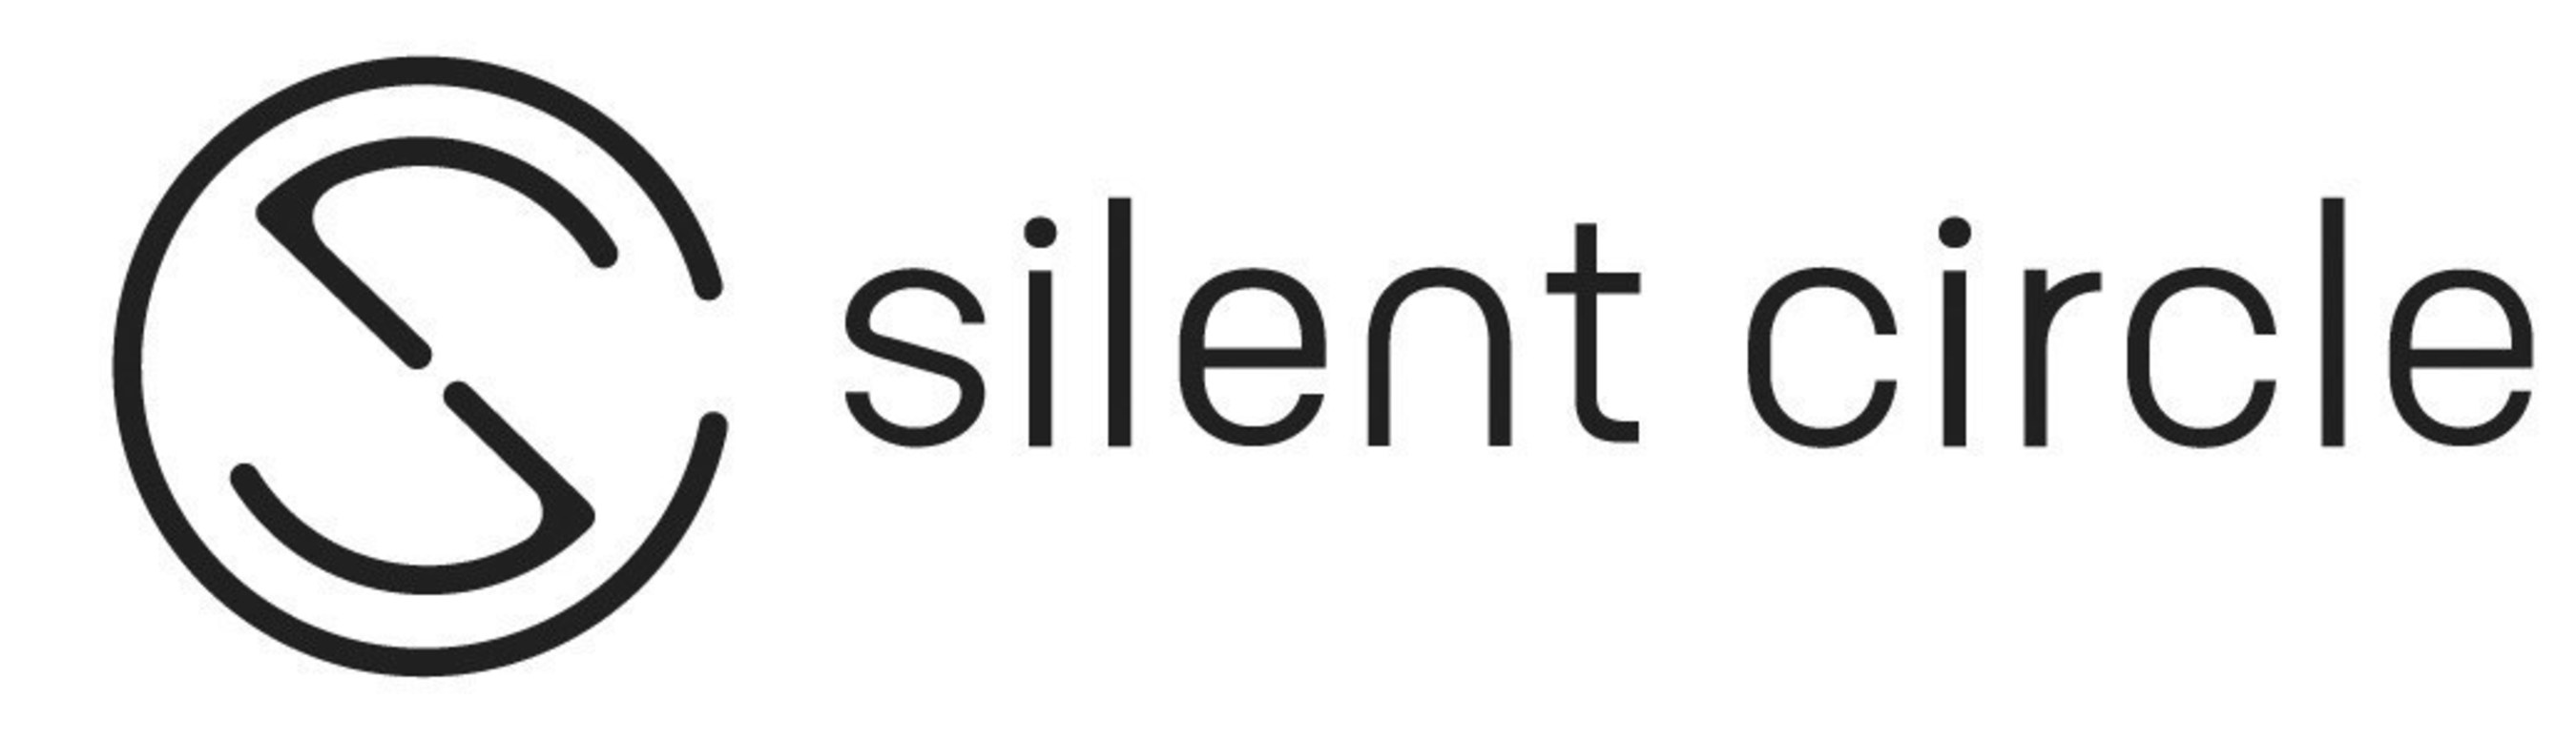 Silent Circle kondigt distributeursovereenkomst met Ingram Micro Mobility aan